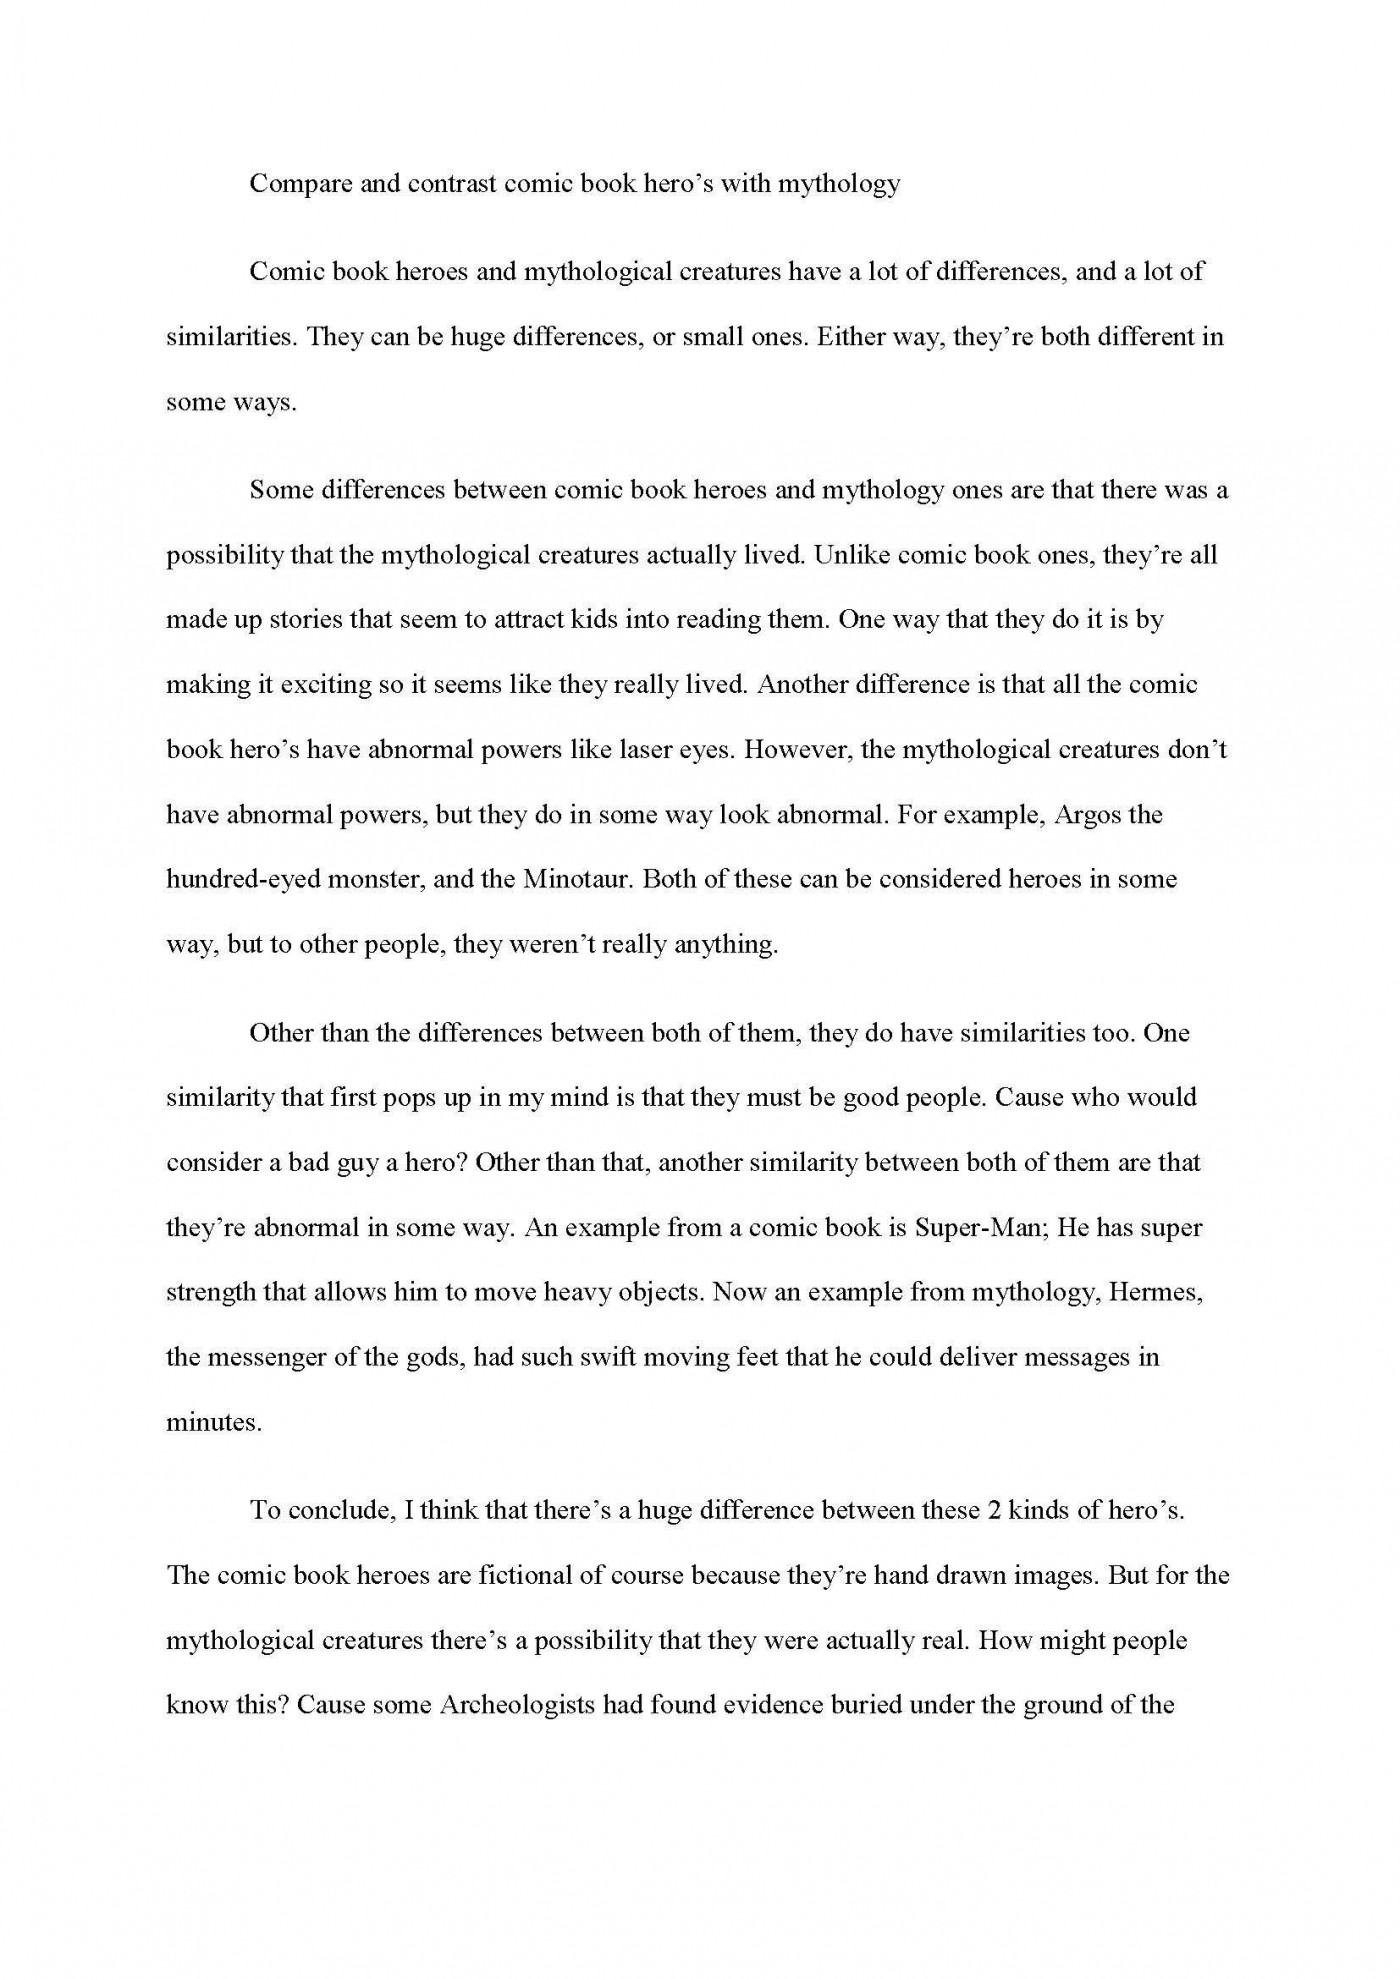 001 Exceptional Compare And Contrast Essay Example College Picture  For Topic Free Comparison1400